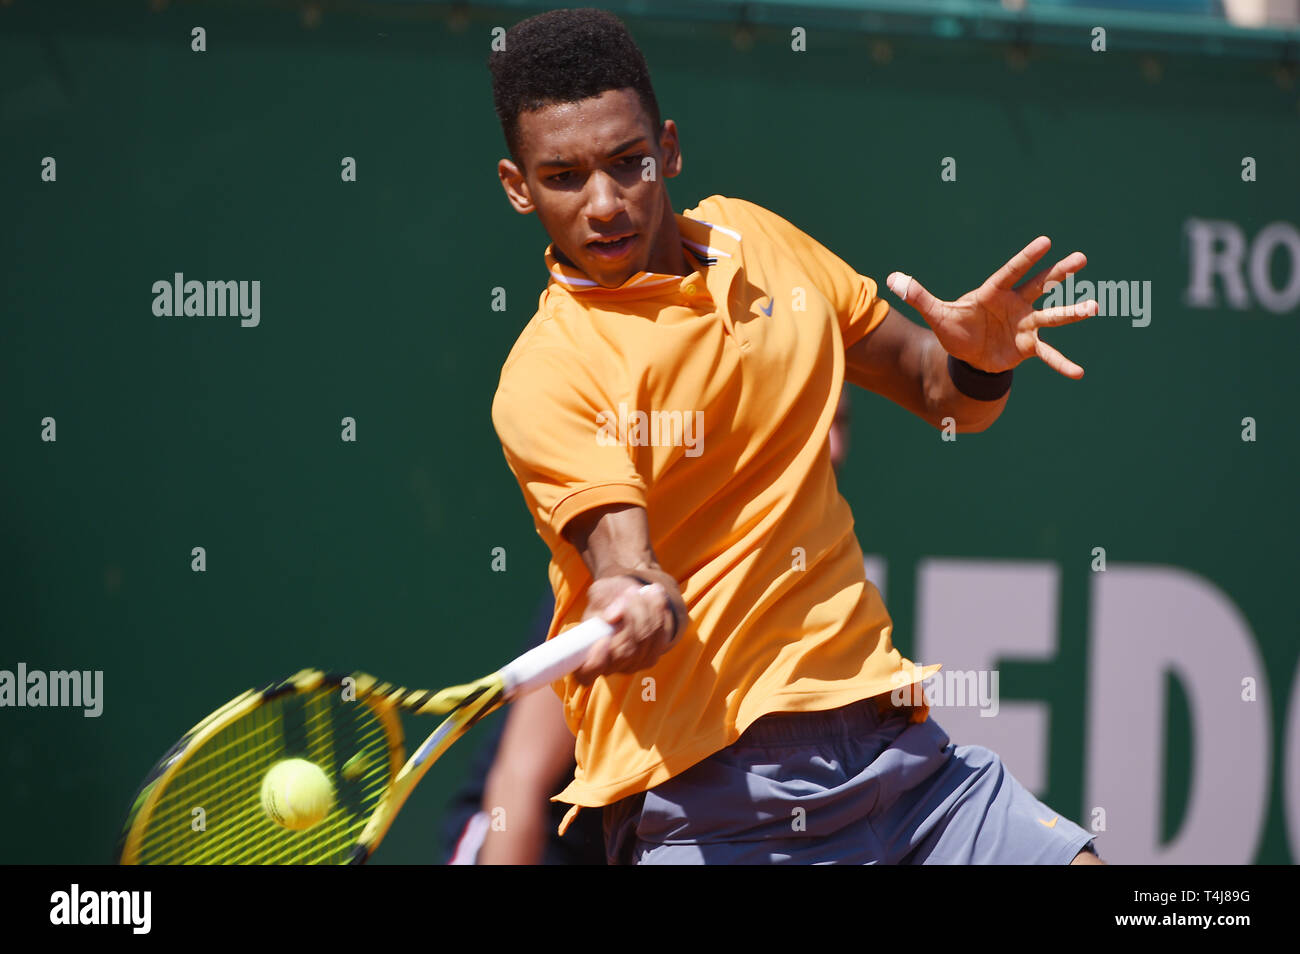 Roquebrune-Cap-Martin, France. 17th Apr, 2019. Felix Auger-Aliassime (CAN) Tennis : Men's Singles 2nd Round match during Monte Carlo Masters at Monte Carlo Country Club in Roquebrune-Cap-Martin, France . Credit: Itaru Chiba/AFLO/Alamy Live News Stock Photo